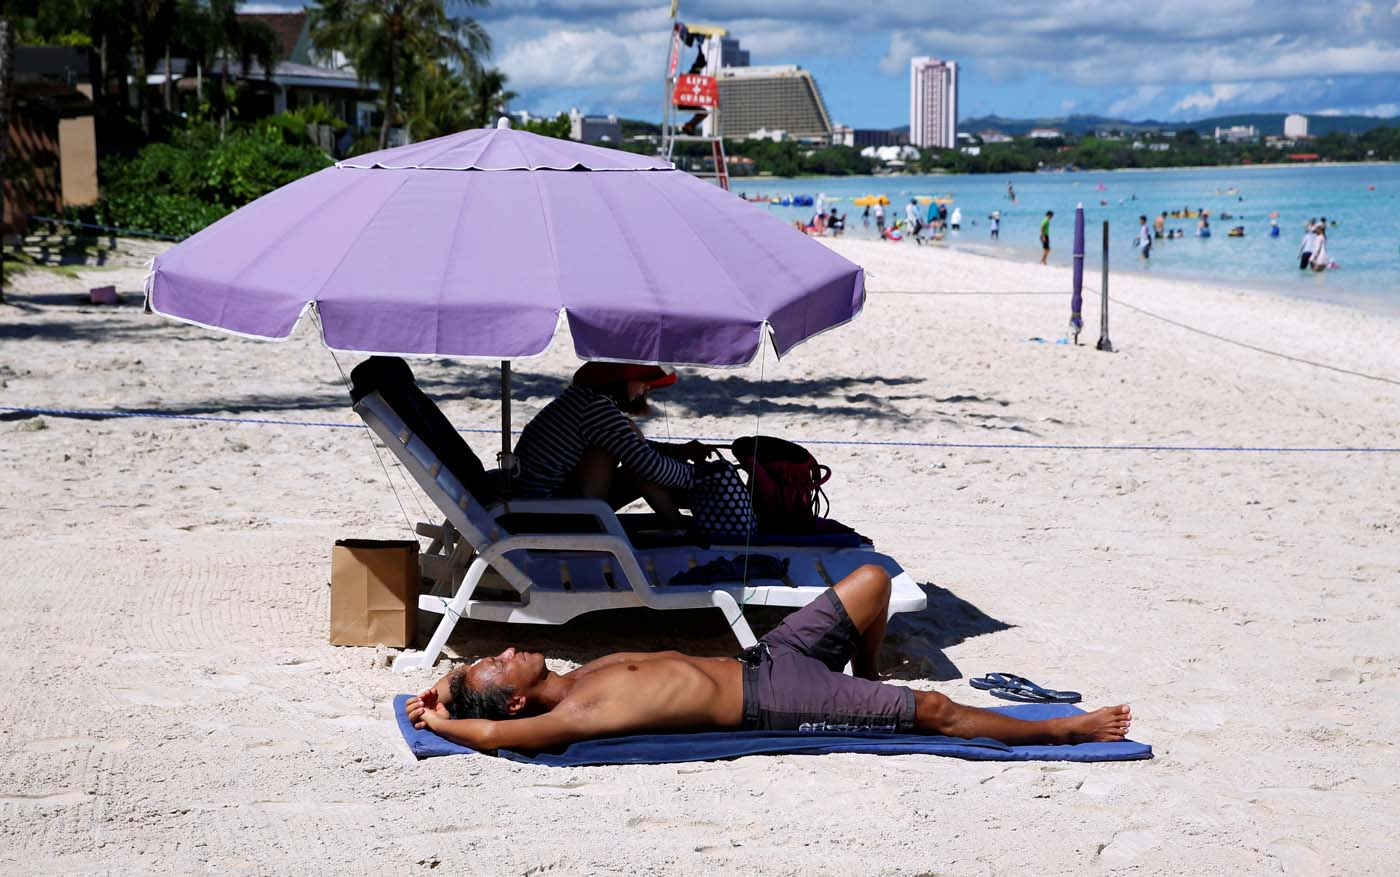 Tourists enjoy the beach in the Tumon tourist district on the island of Guam, a U.S. Pacific Territory, August 12, 2017. REUTERS/Erik De Castro